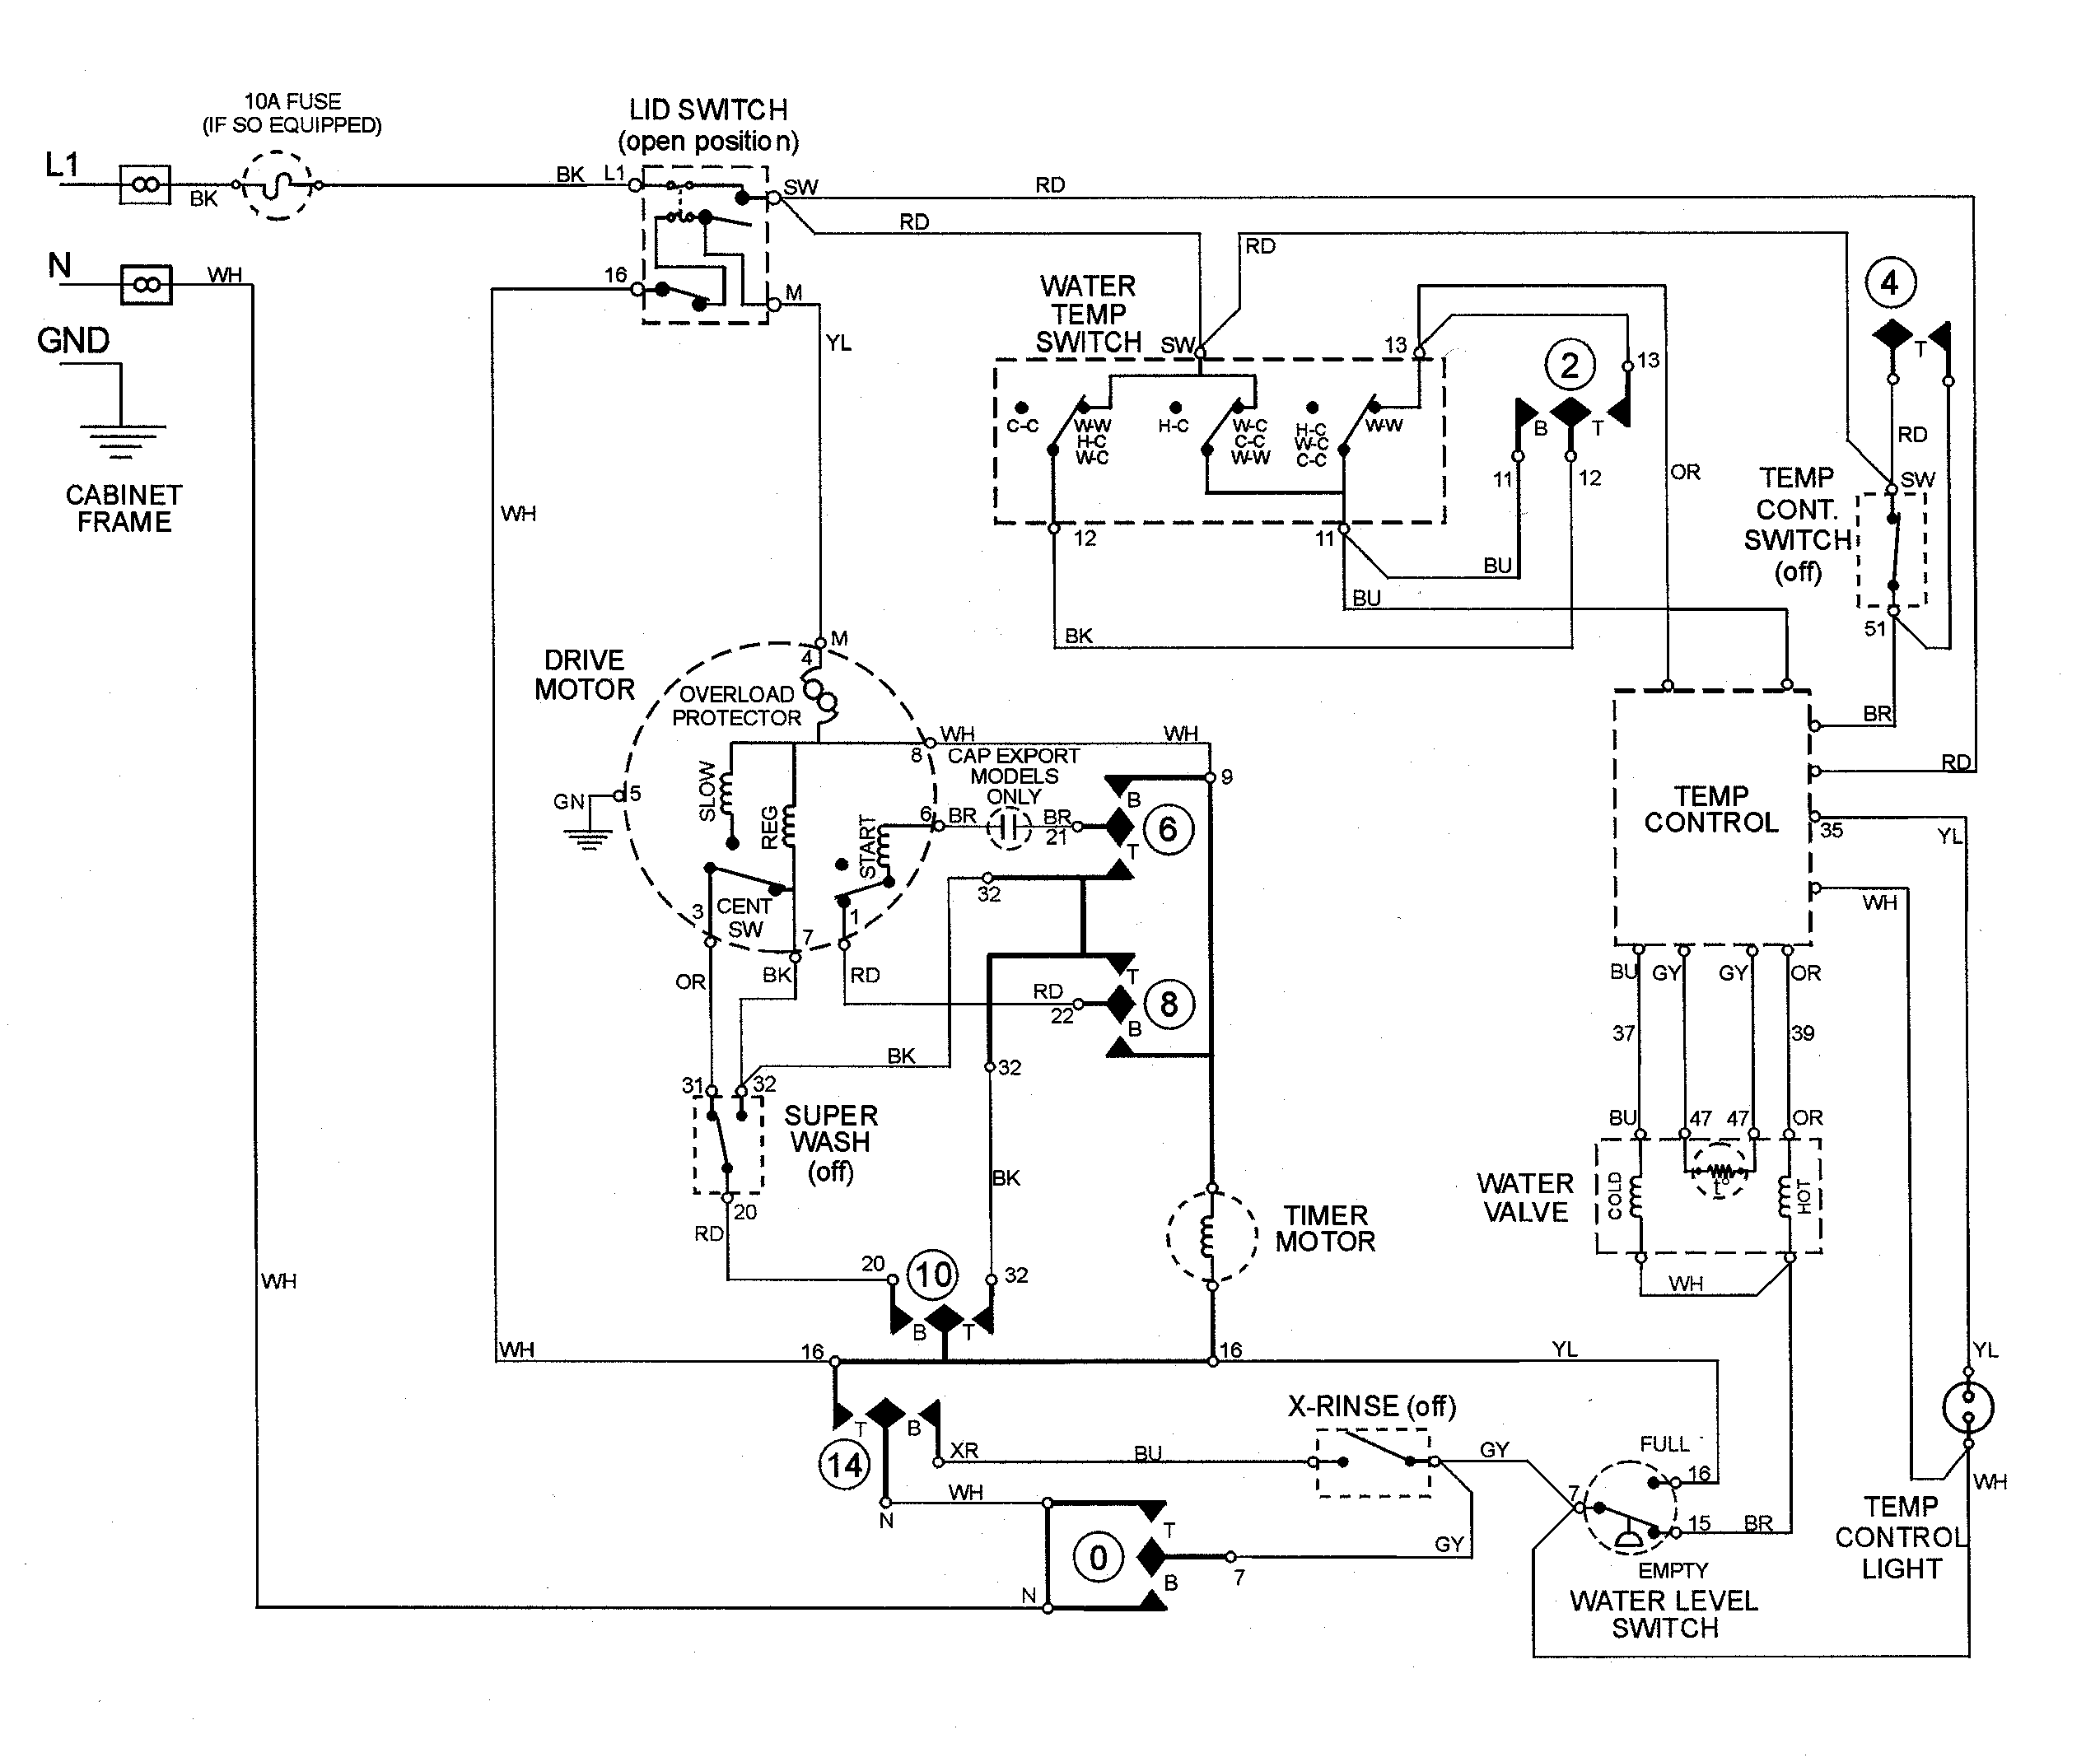 hight resolution of machines wiring diagram wires wiring diagram split 120v washer wire diagram wiring diagram host machines wiring